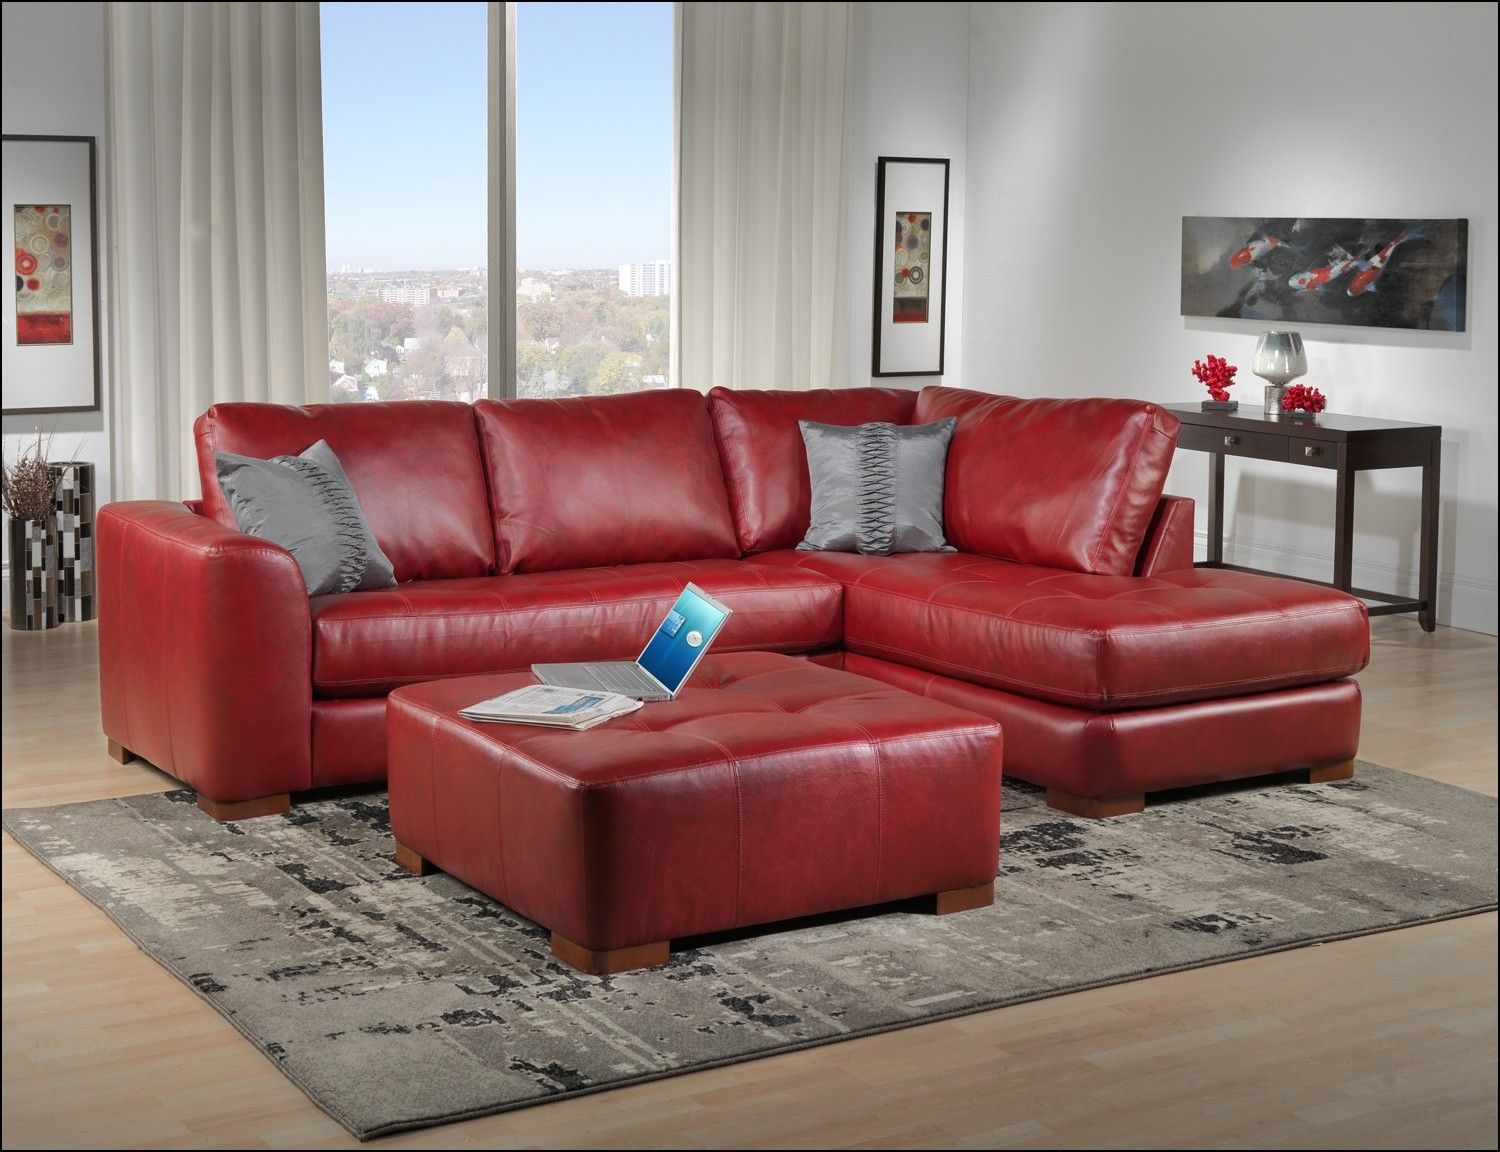 living room ideas with leather furniture%0A The Red Leather Couch Decorating Ideas are extremely important to making a  luxurious feel in a livingroom  family room  or